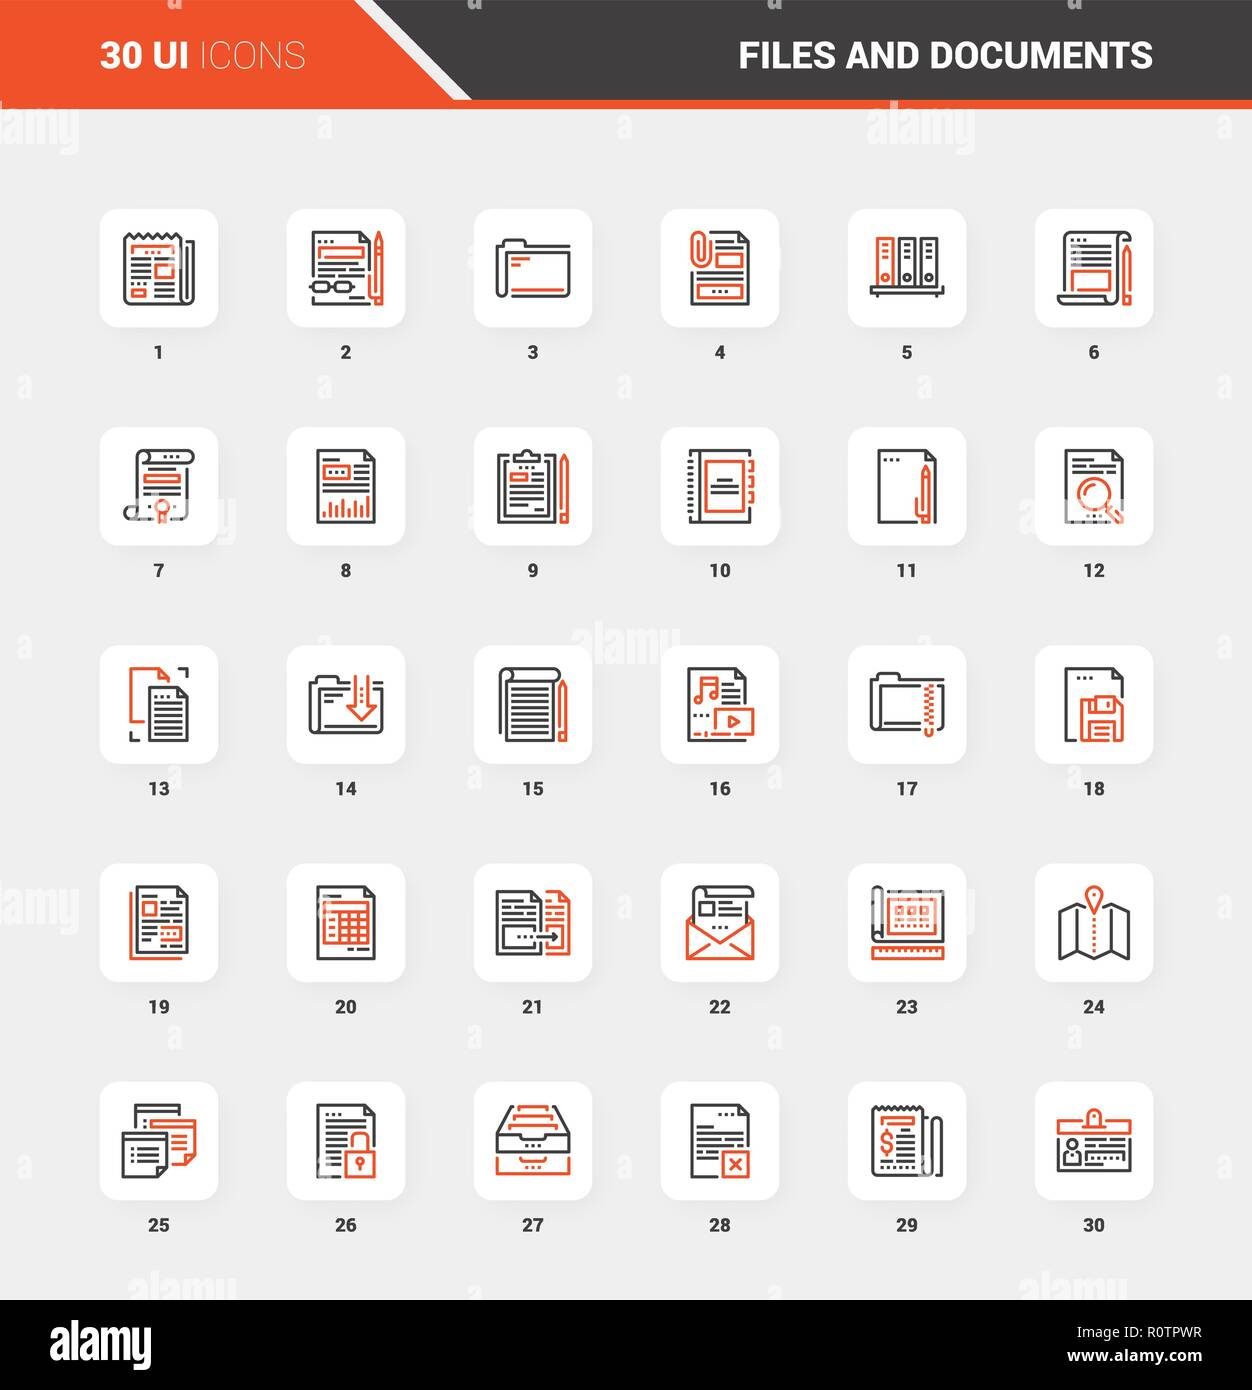 Files and Documents Flat Line Web Icon Concepts - Stock Vector